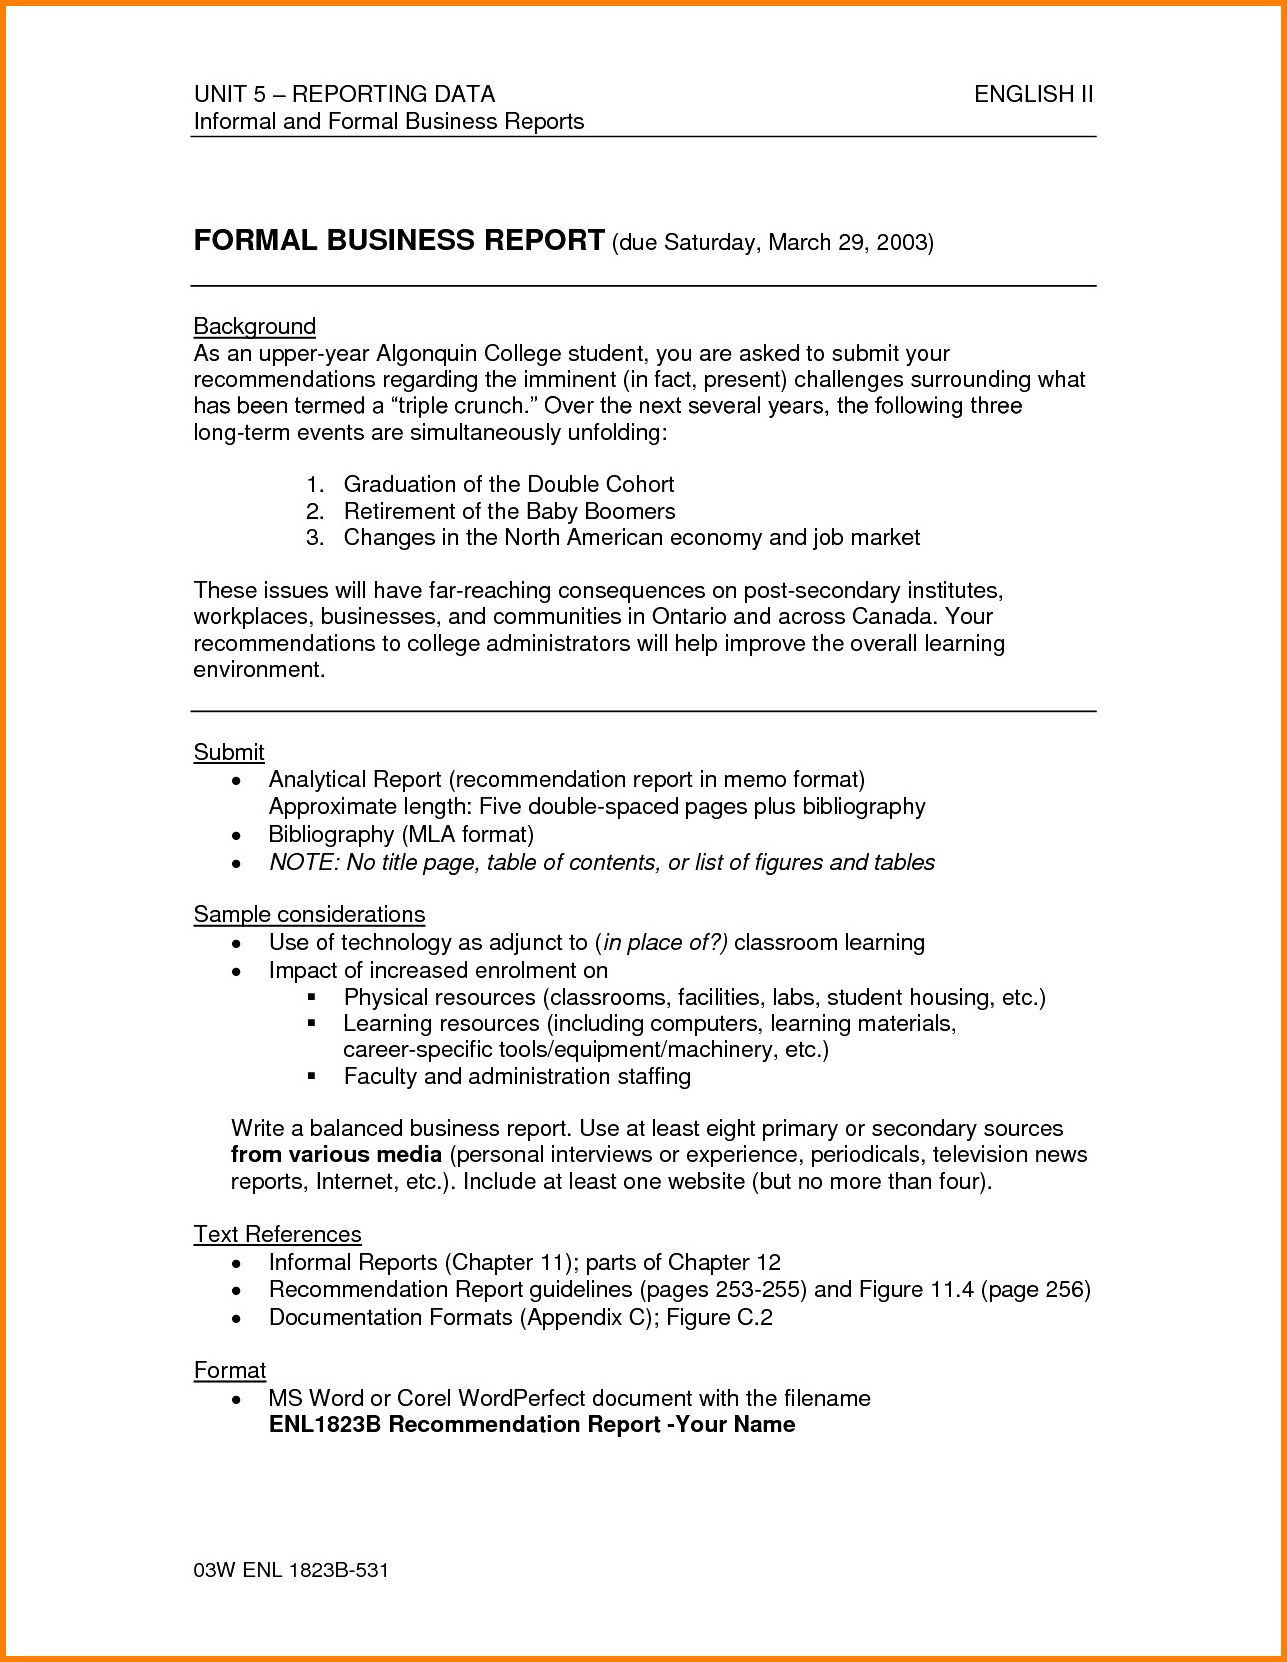 Report Writing Example For Students Factual Examples Pdf Throughout Report Writing Template Downloa In 2020 Business Analysis Report Writing Template Writing Templates